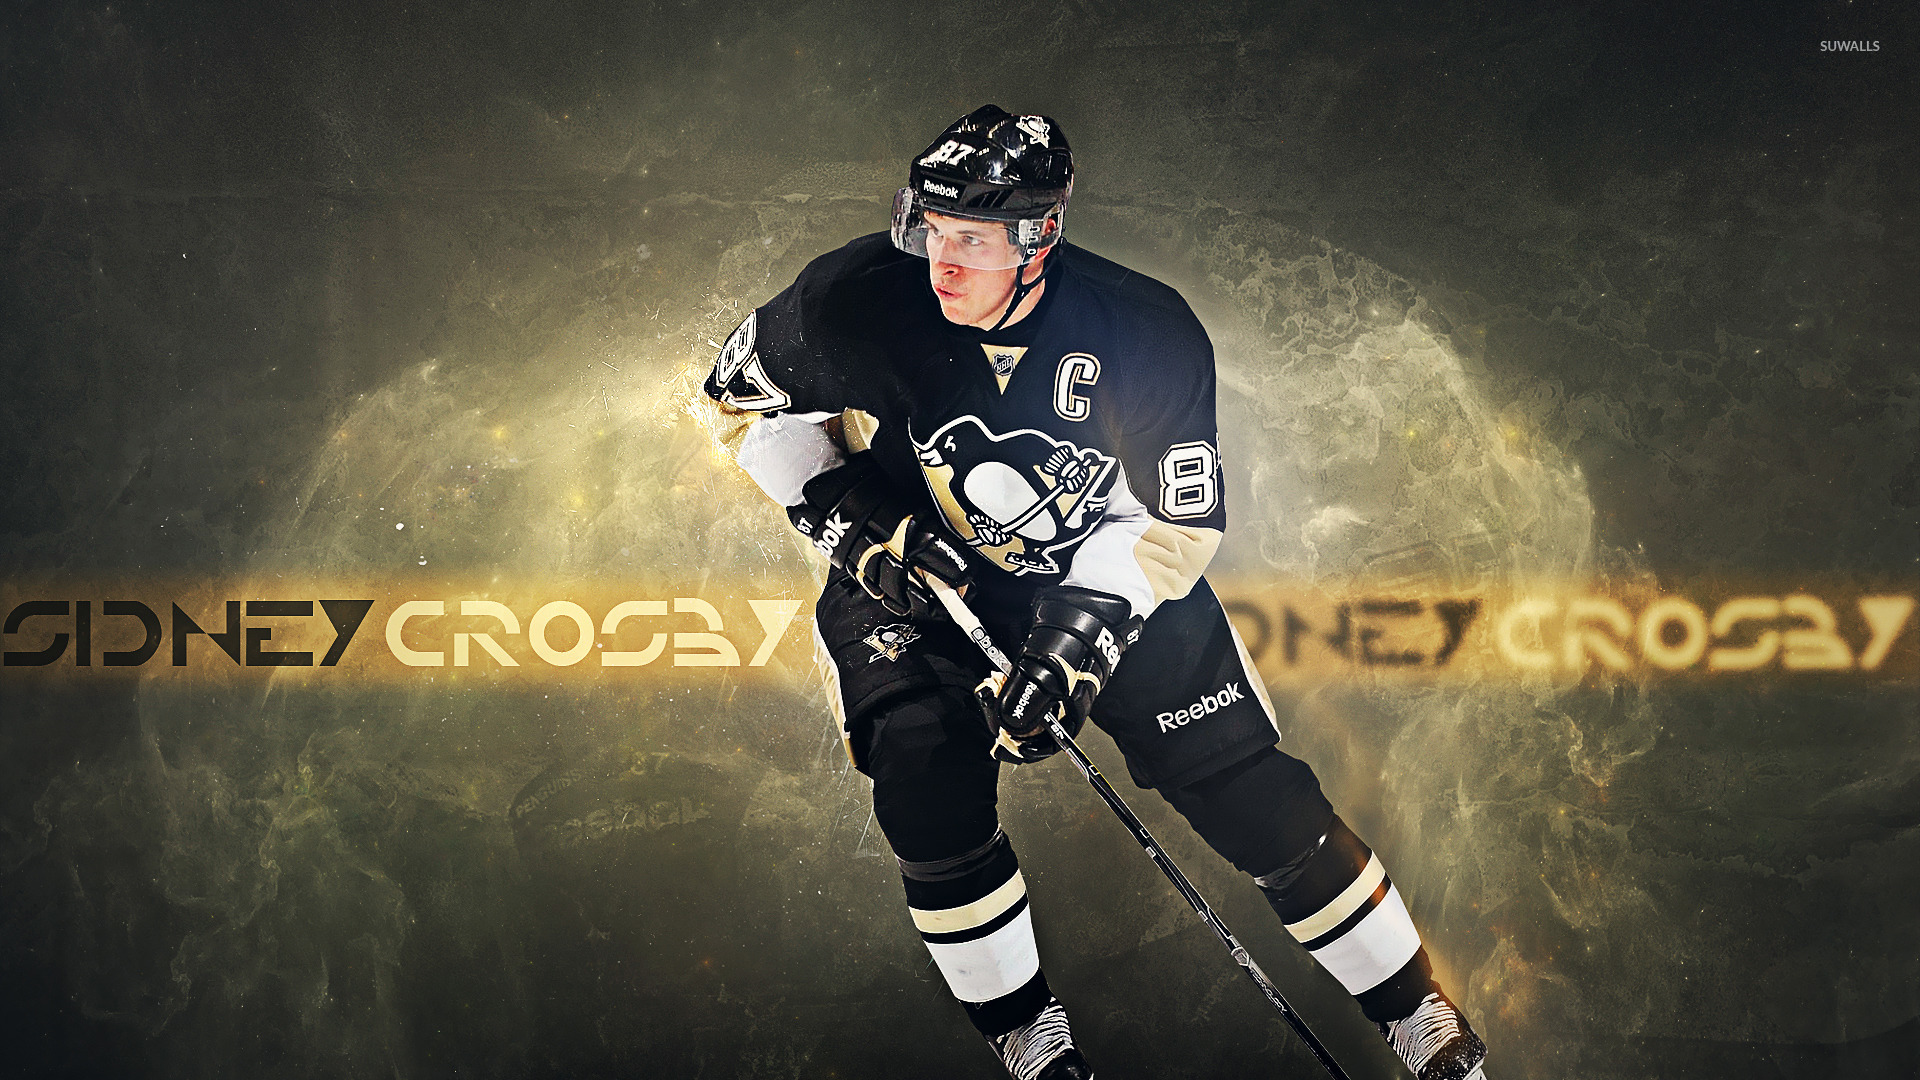 8ea9aee8965 Sidney Crosby wallpaper - Sport wallpapers -  20699